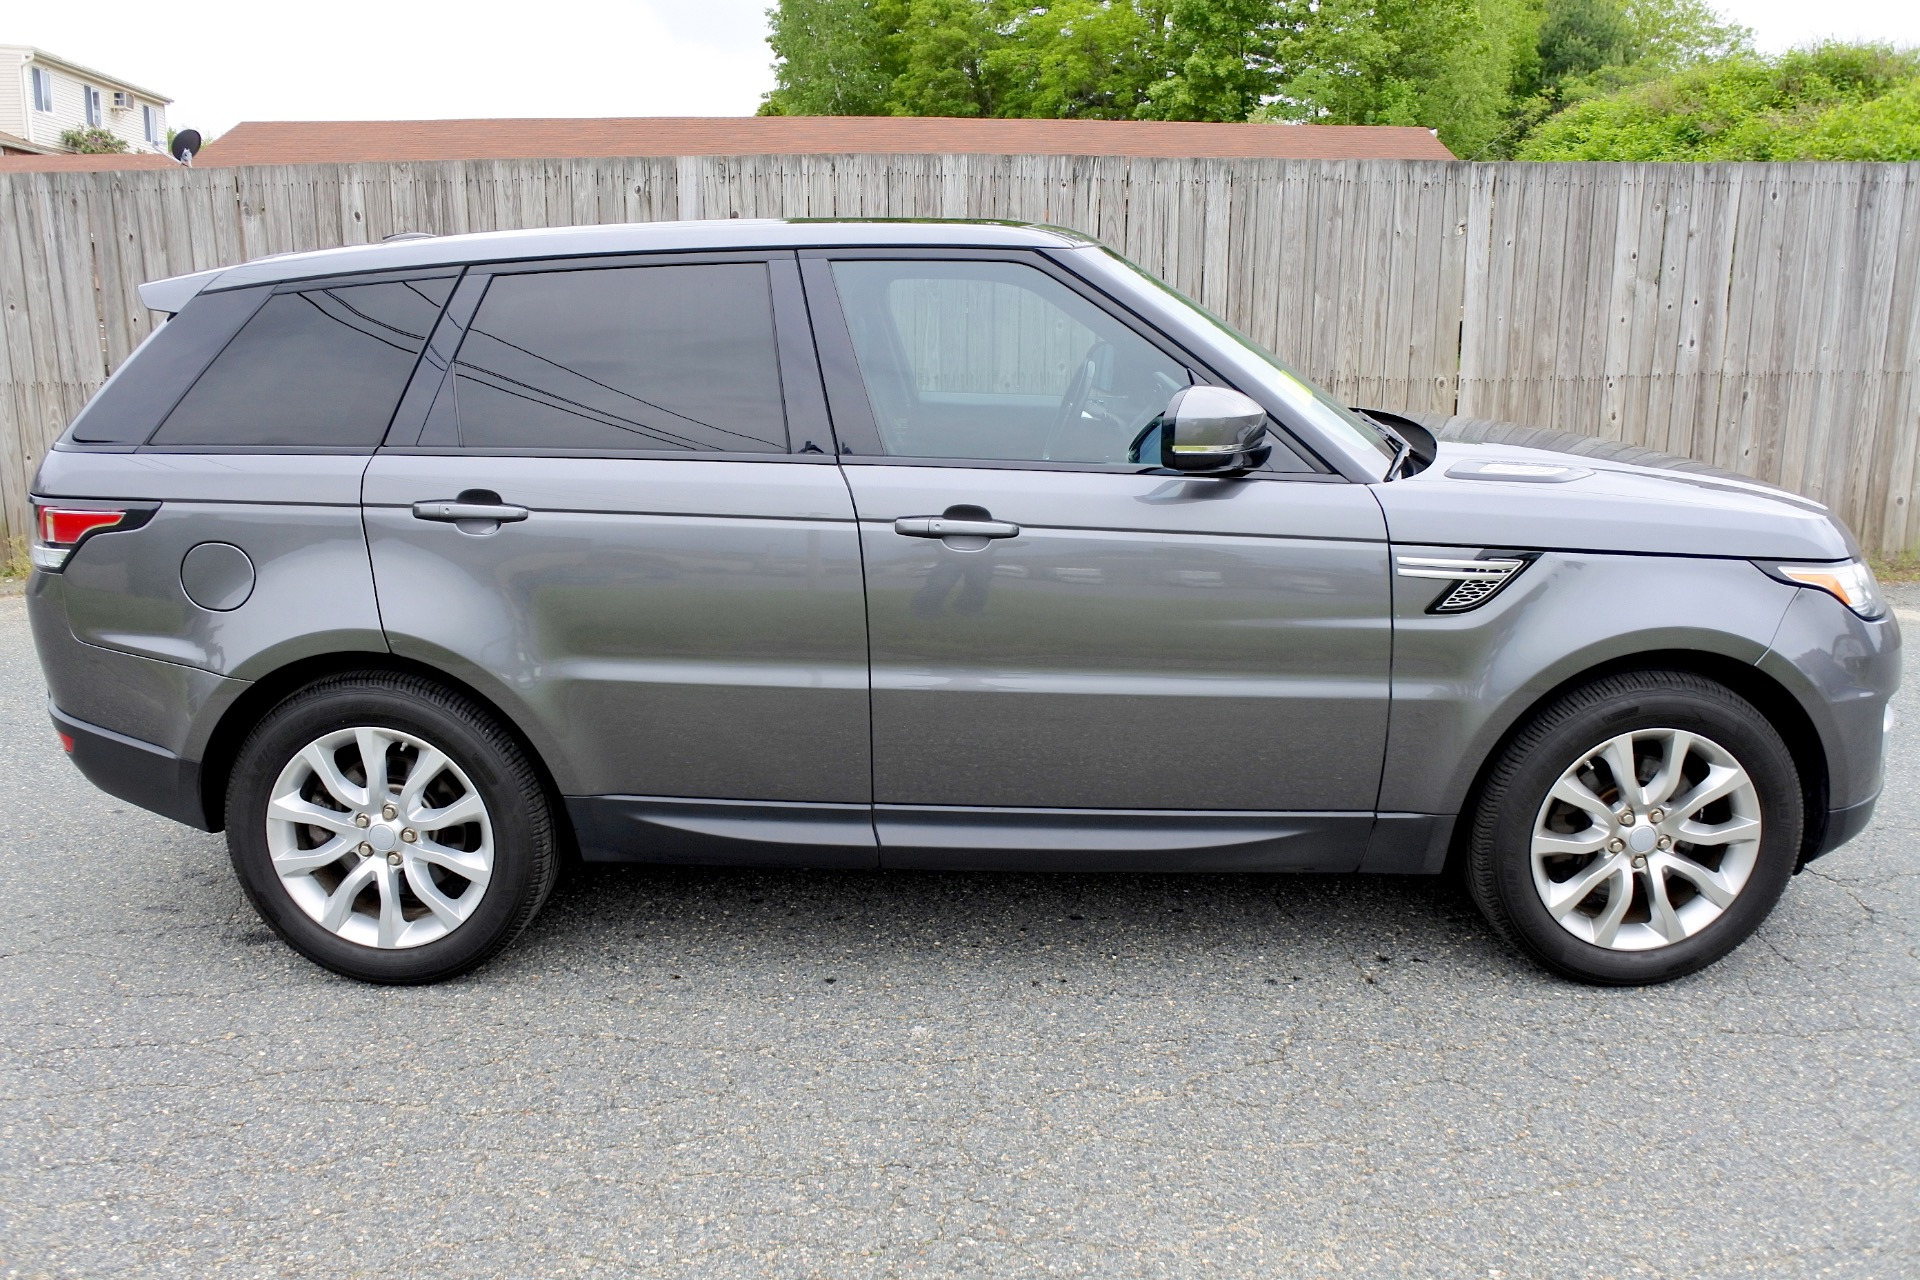 Used 2015 Land Rover Range Rover Sport HSE Used 2015 Land Rover Range Rover Sport HSE for sale  at Metro West Motorcars LLC in Shrewsbury MA 6